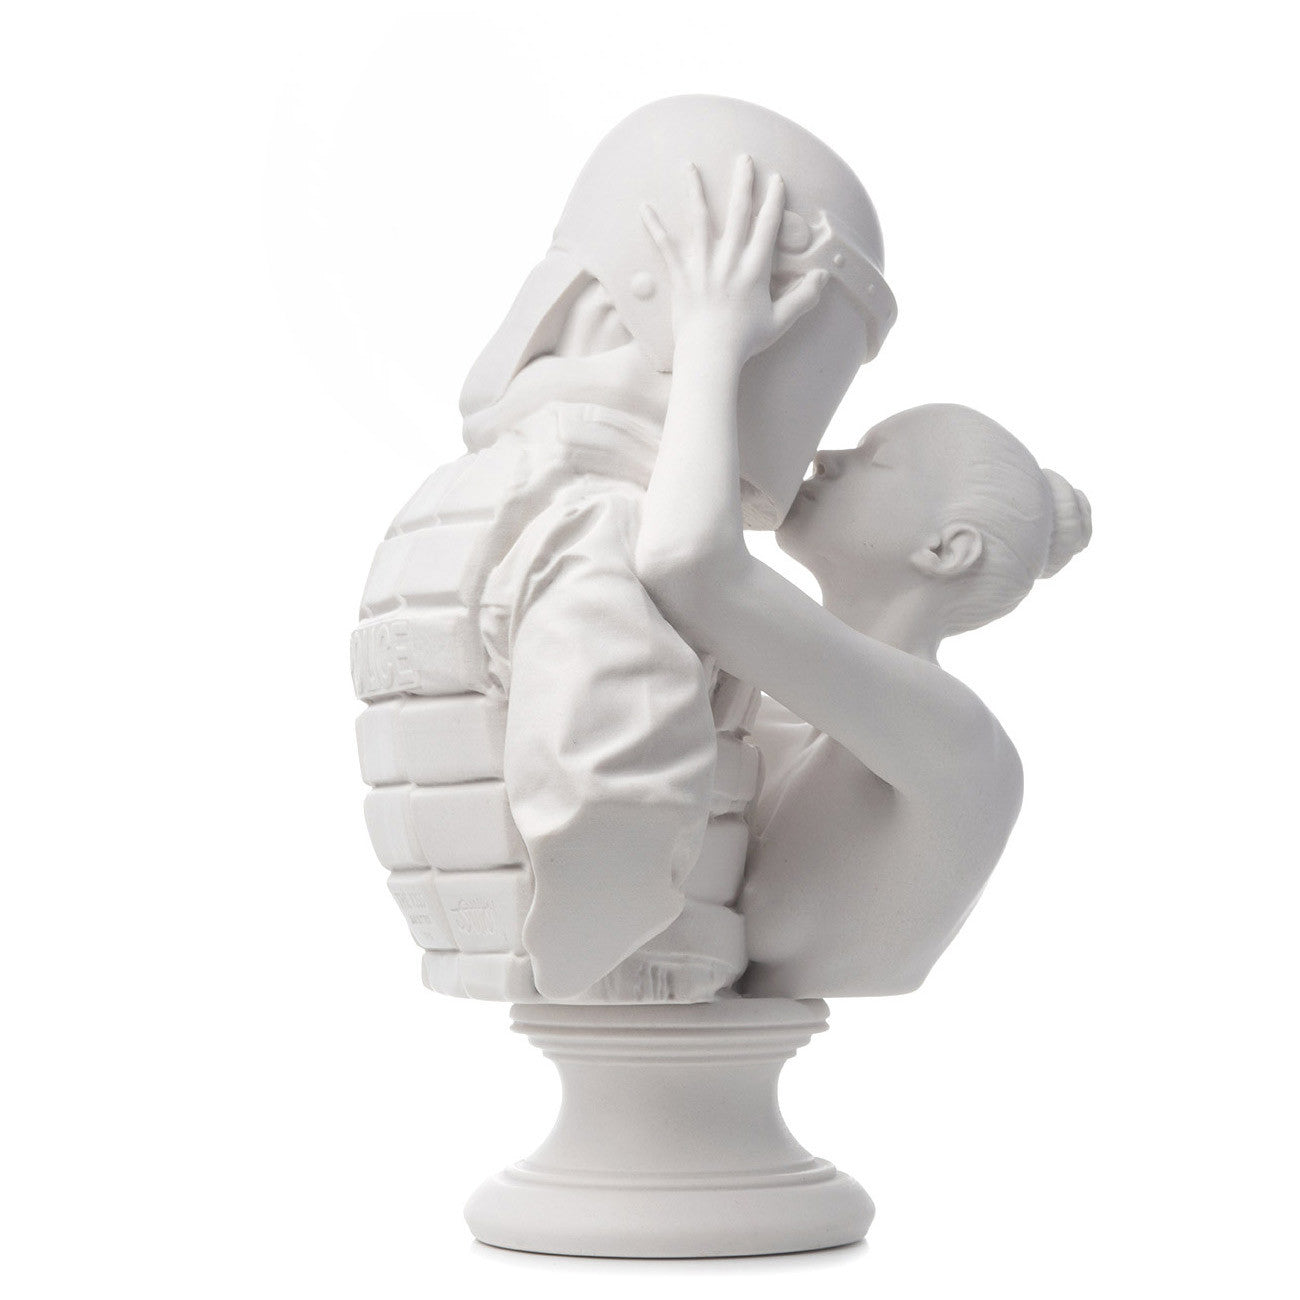 'The Kiss' Marble Sculpture by Jam Sutton